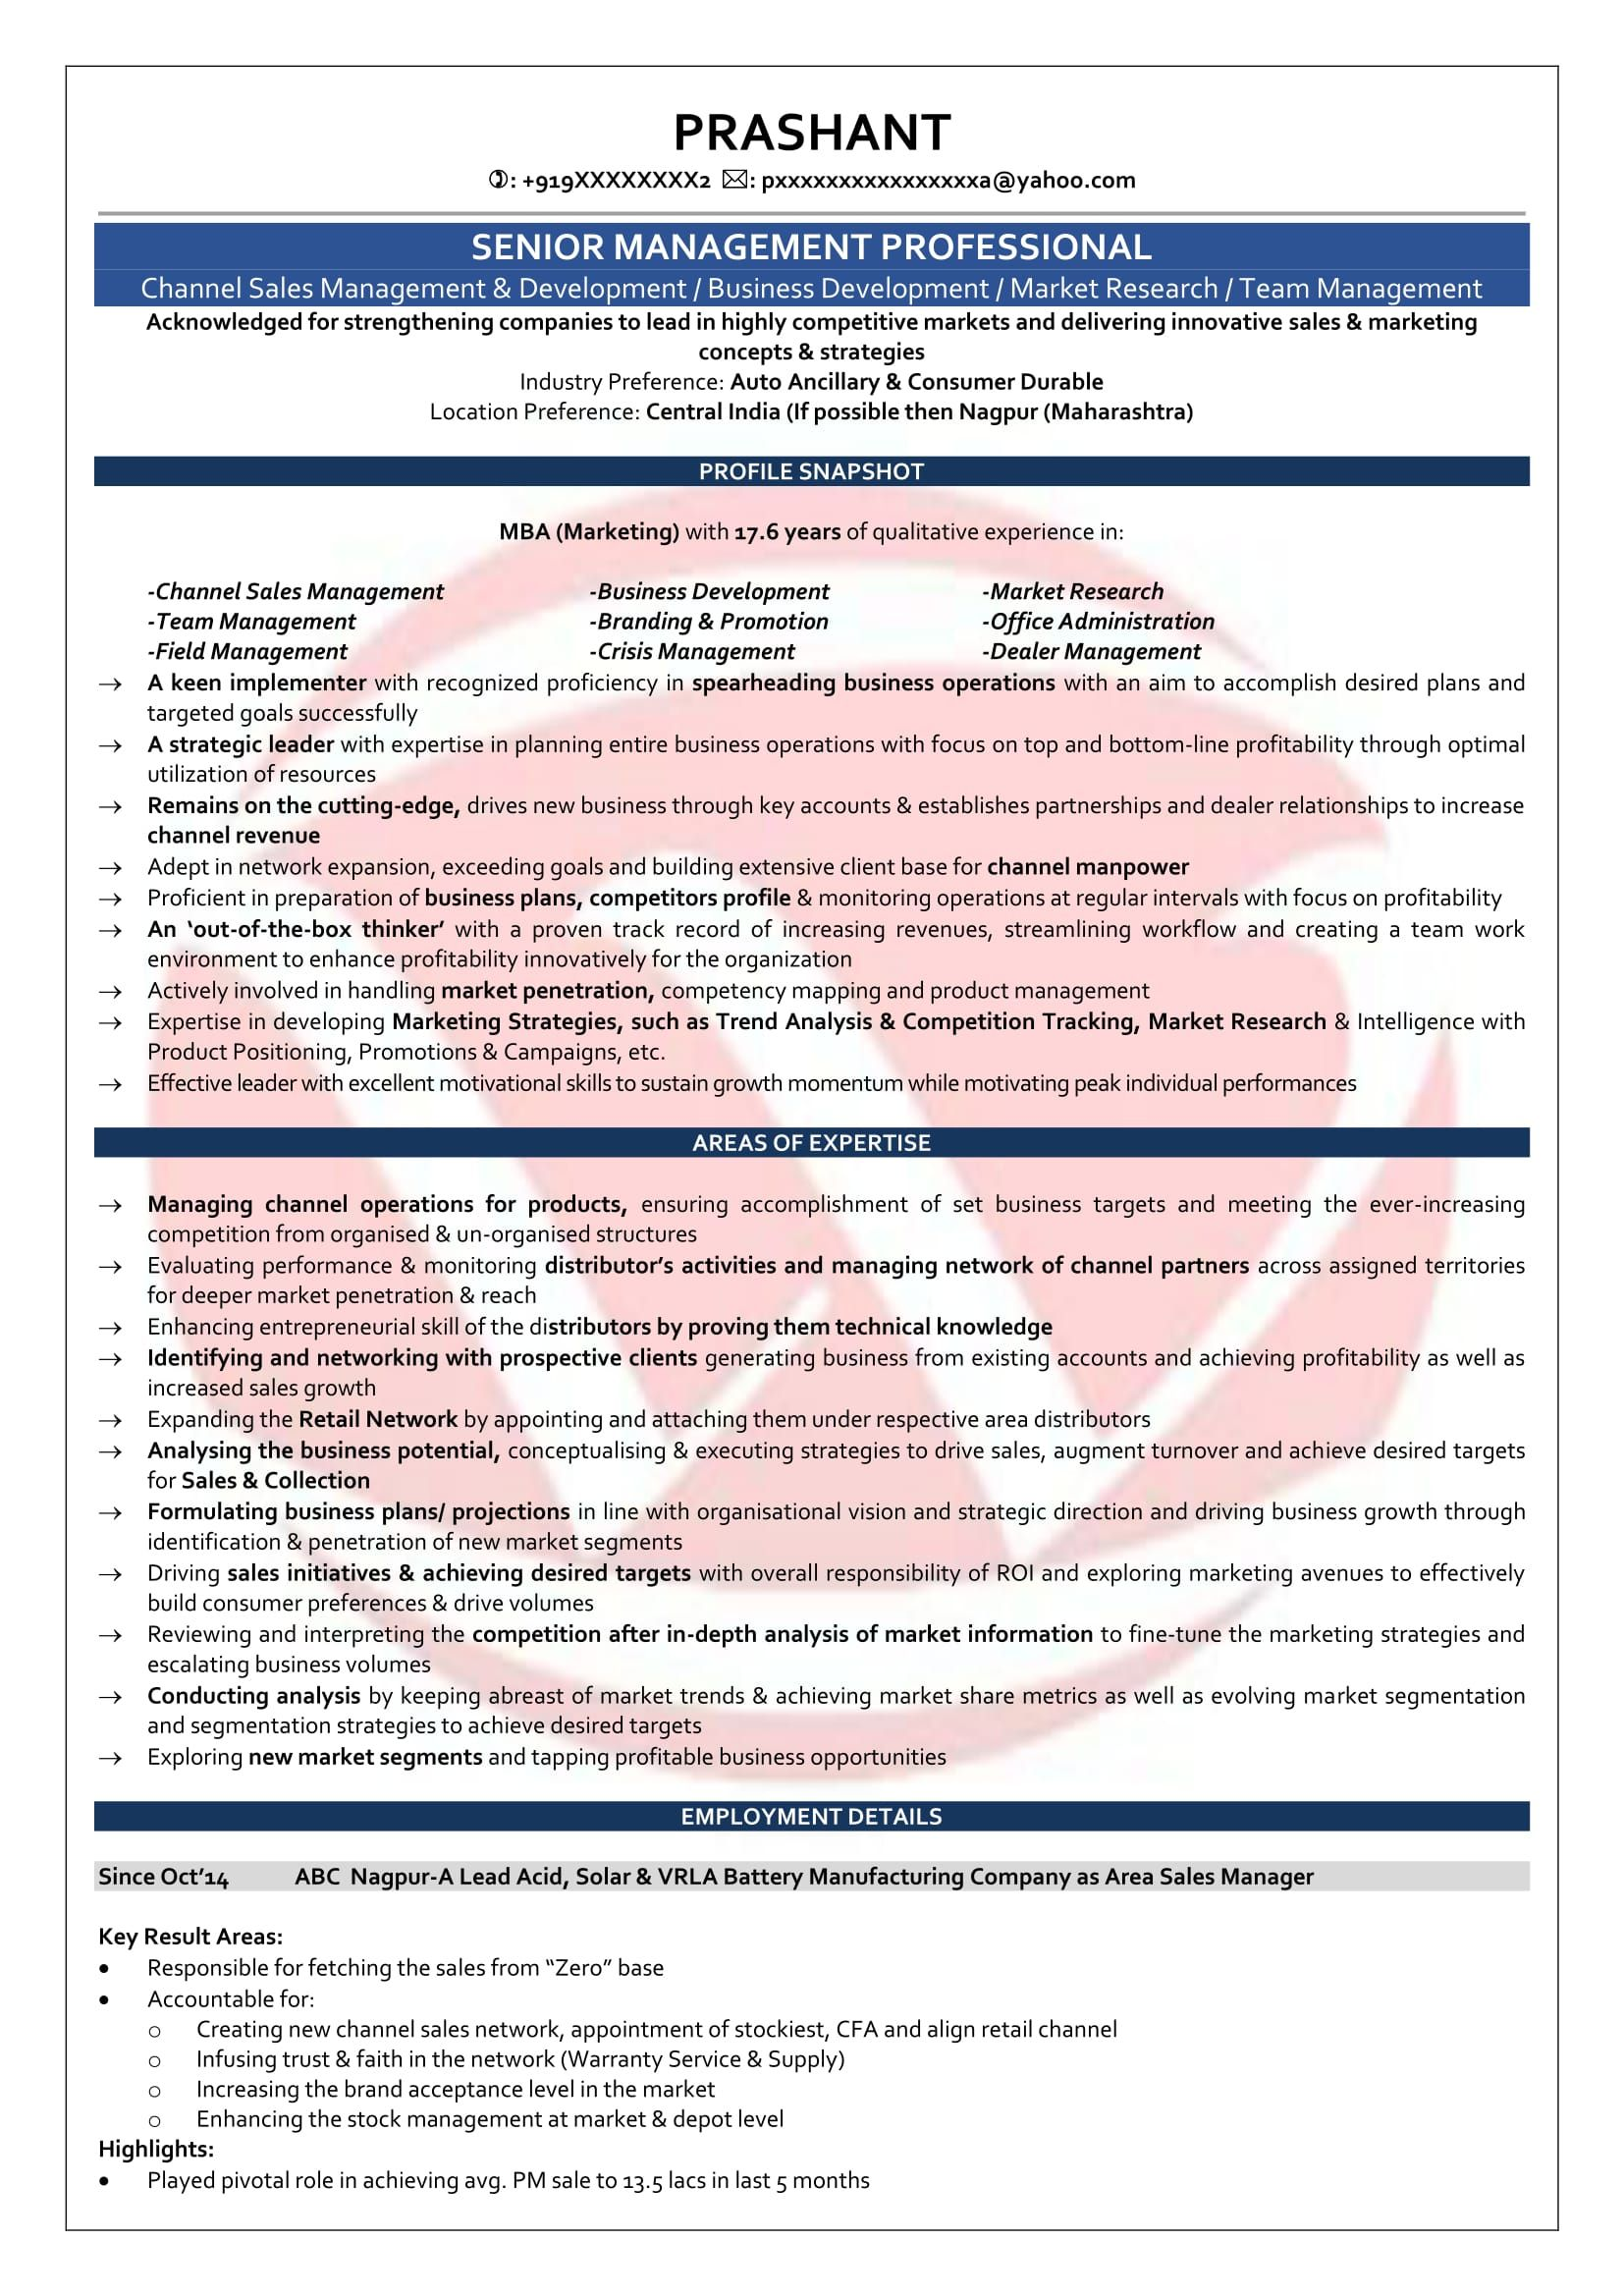 Sample Resume Format For 5 Years Experience Resume Format